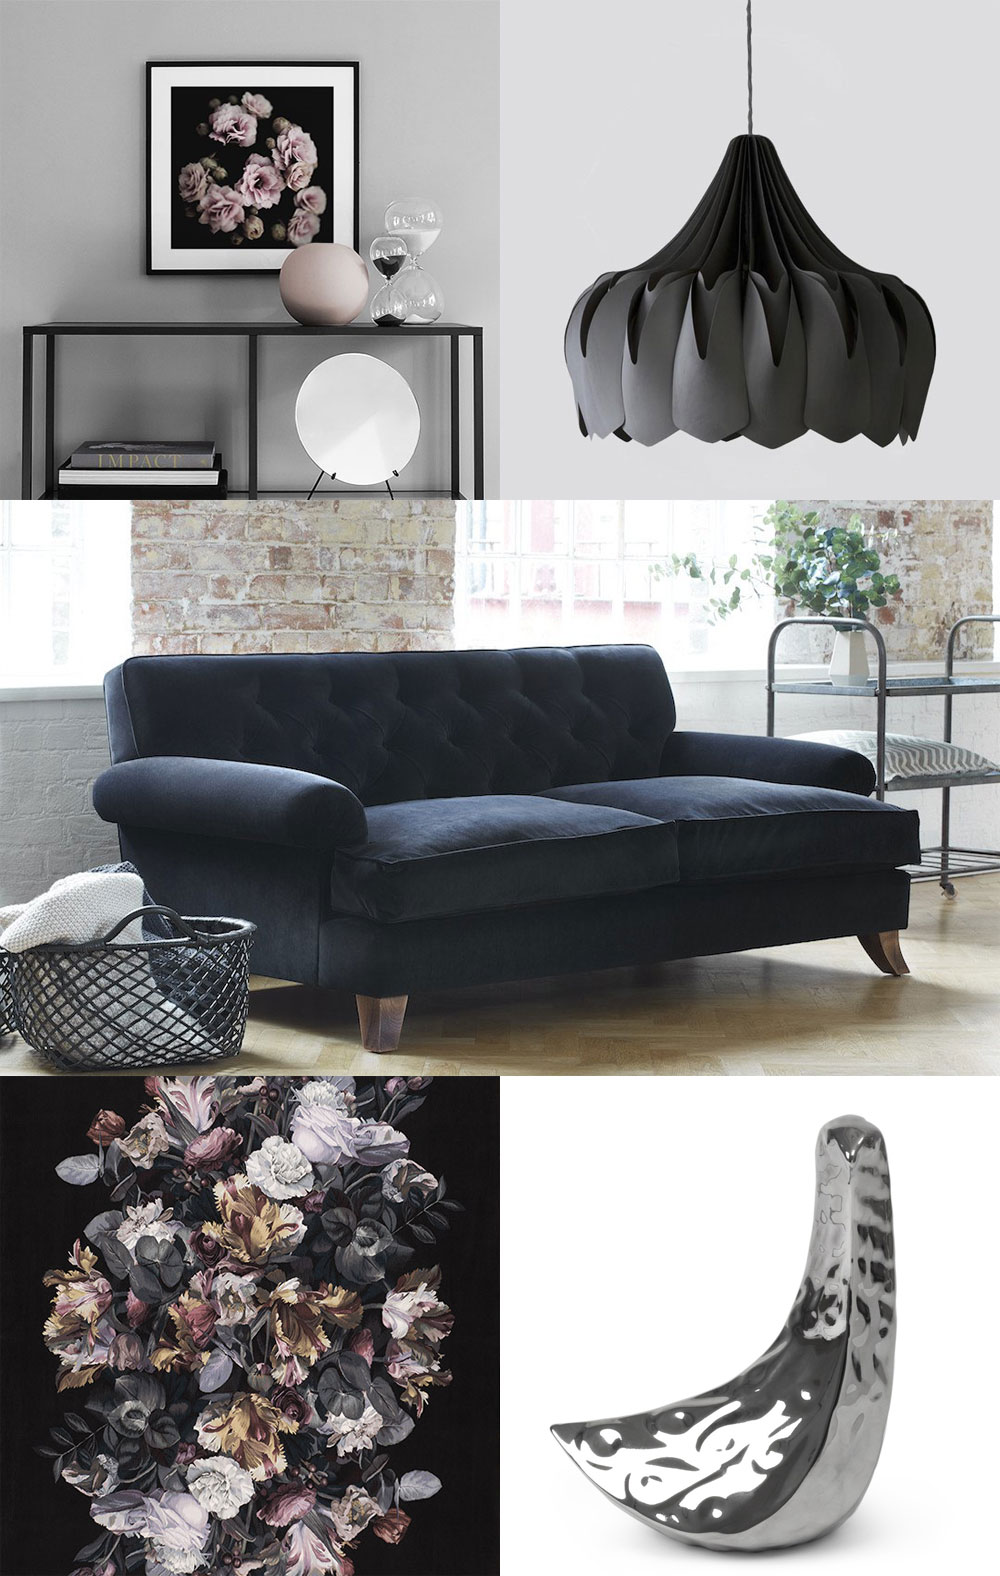 How to style your sofa 4 different ways in partnership with Darlings of Chelsea, from luxe black velvet to modern modular designs.